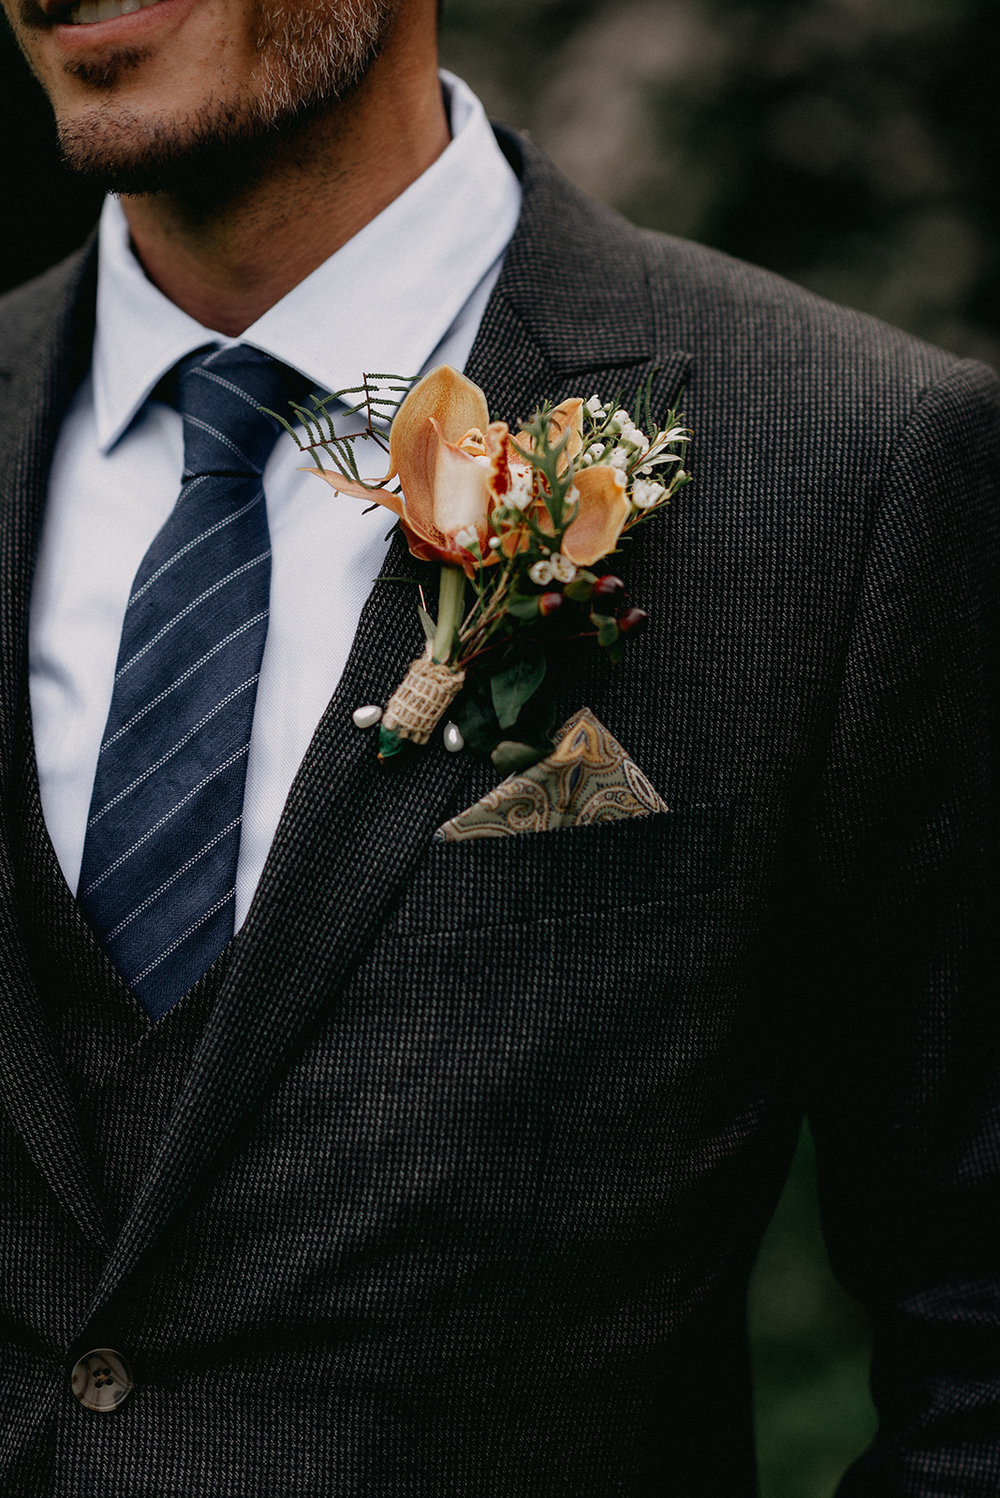 Groom boutonniere with a tweed detailed suit - Pearl Weddings & Events